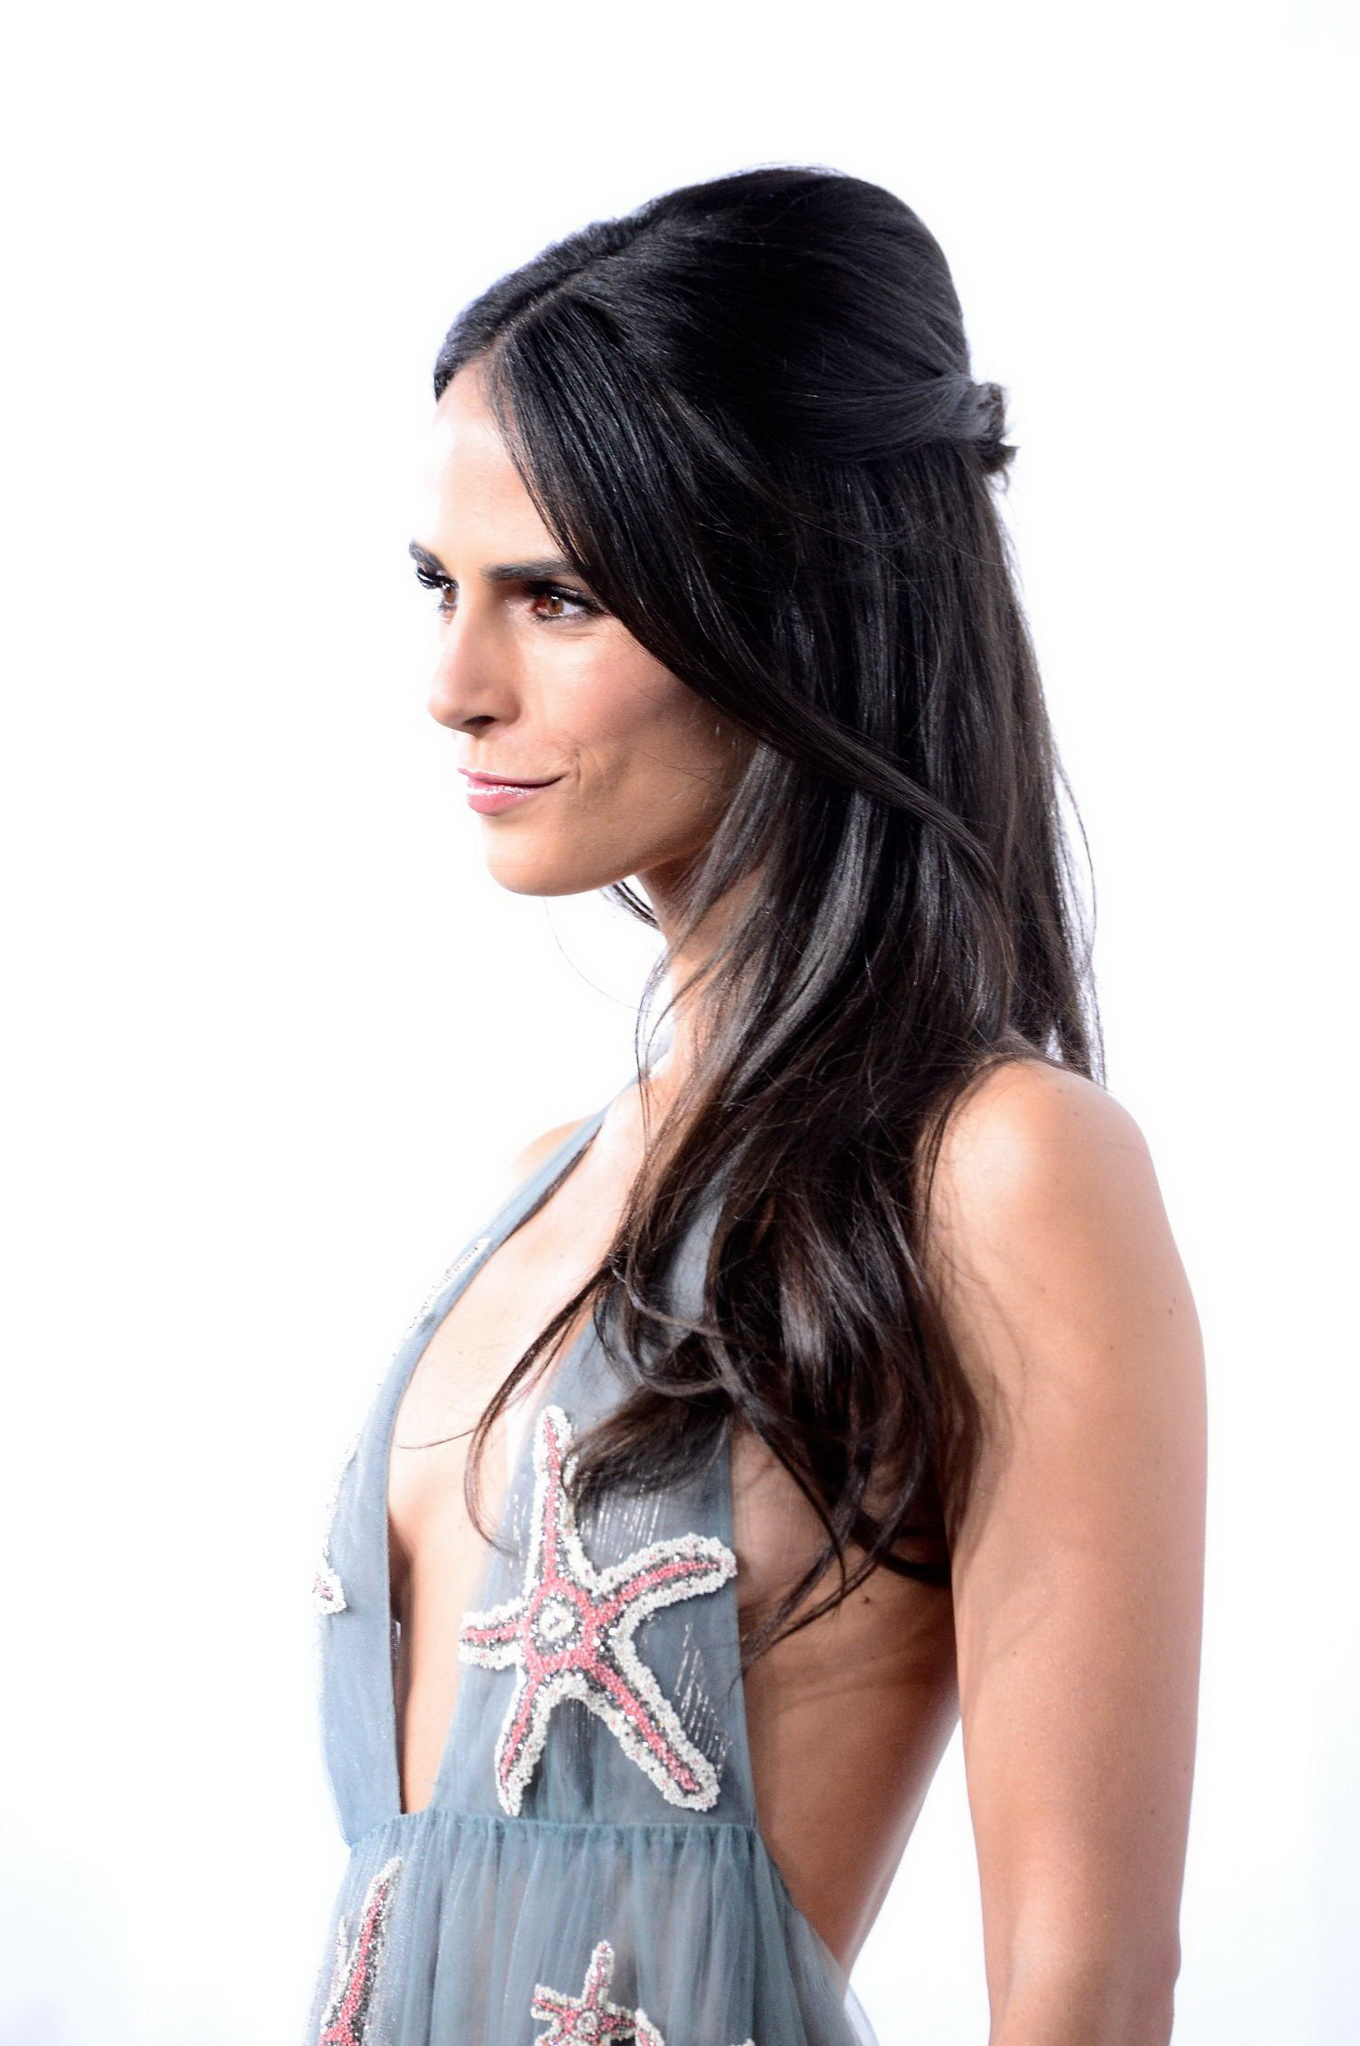 Matchless Jordana brewster cleavage something is